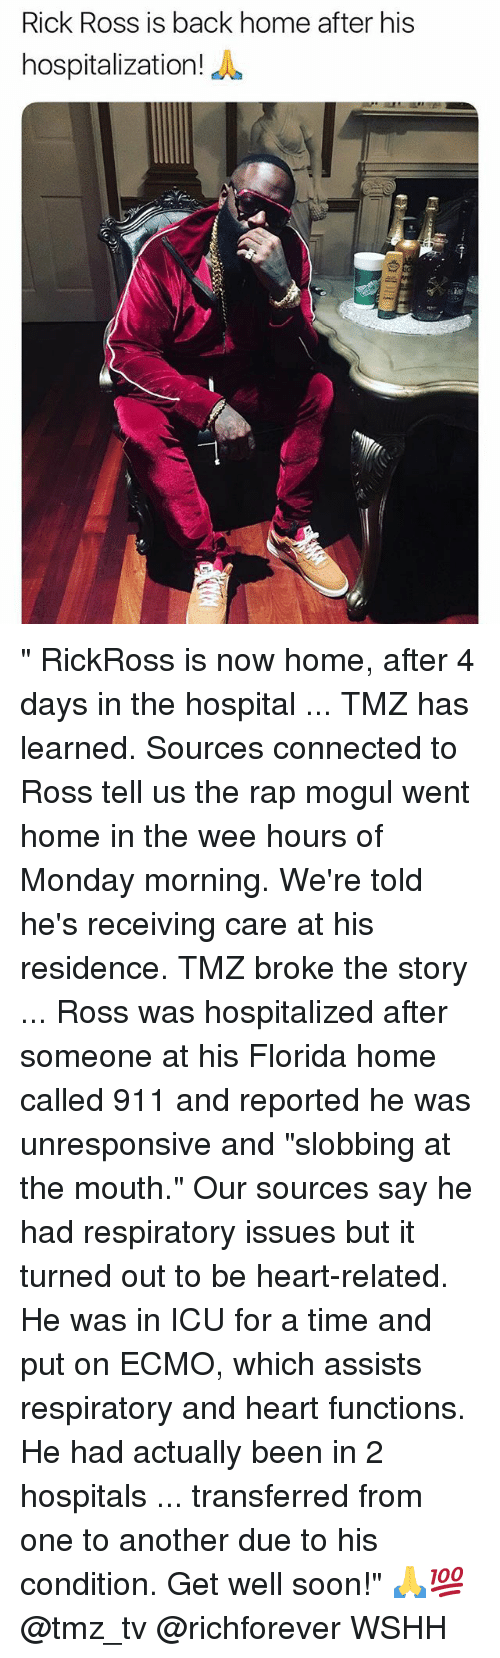 "Memes, Rap, and Rick Ross: Rick Ross is back home after his  hospitalization  iE "" RickRoss is now home, after 4 days in the hospital ... TMZ has learned. Sources connected to Ross tell us the rap mogul went home in the wee hours of Monday morning. We're told he's receiving care at his residence. TMZ broke the story ... Ross was hospitalized after someone at his Florida home called 911 and reported he was unresponsive and ""slobbing at the mouth."" Our sources say he had respiratory issues but it turned out to be heart-related. He was in ICU for a time and put on ECMO, which assists respiratory and heart functions. He had actually been in 2 hospitals ... transferred from one to another due to his condition. Get well soon!"" 🙏💯 @tmz_tv @richforever WSHH"